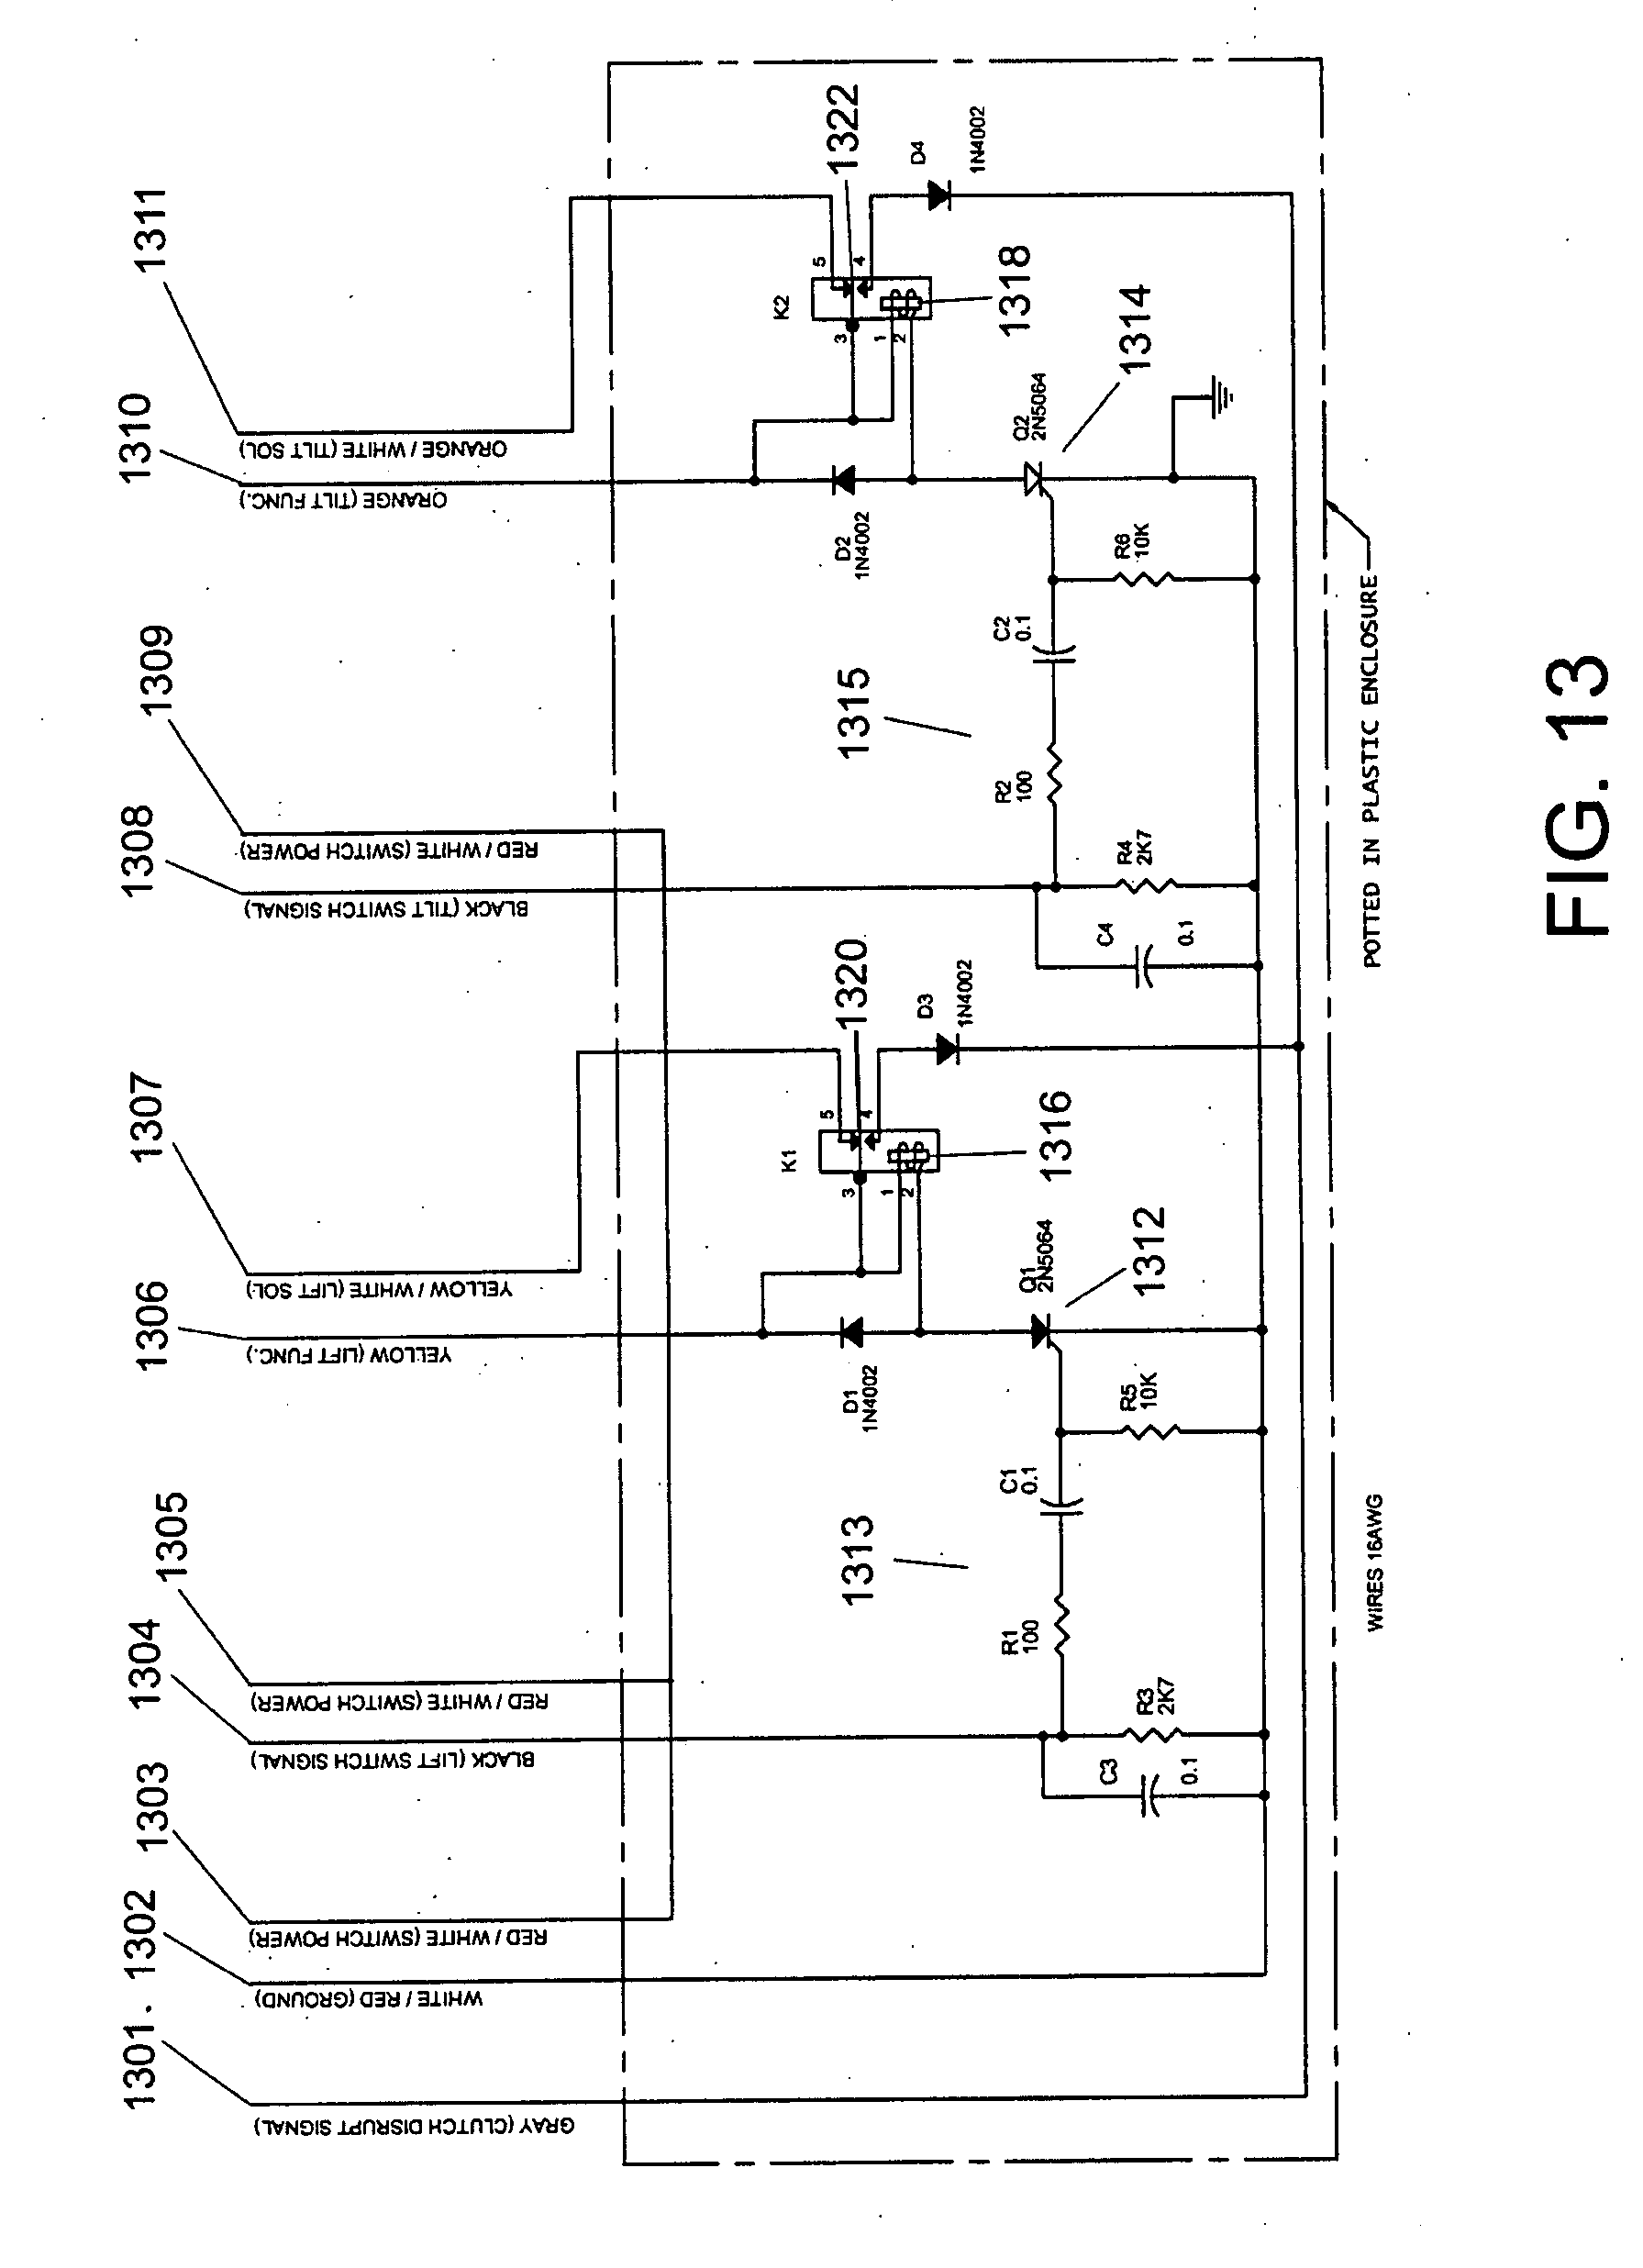 wire diagram 7 wire pigtail patent us20080279667 - tow truck with underlift control ...